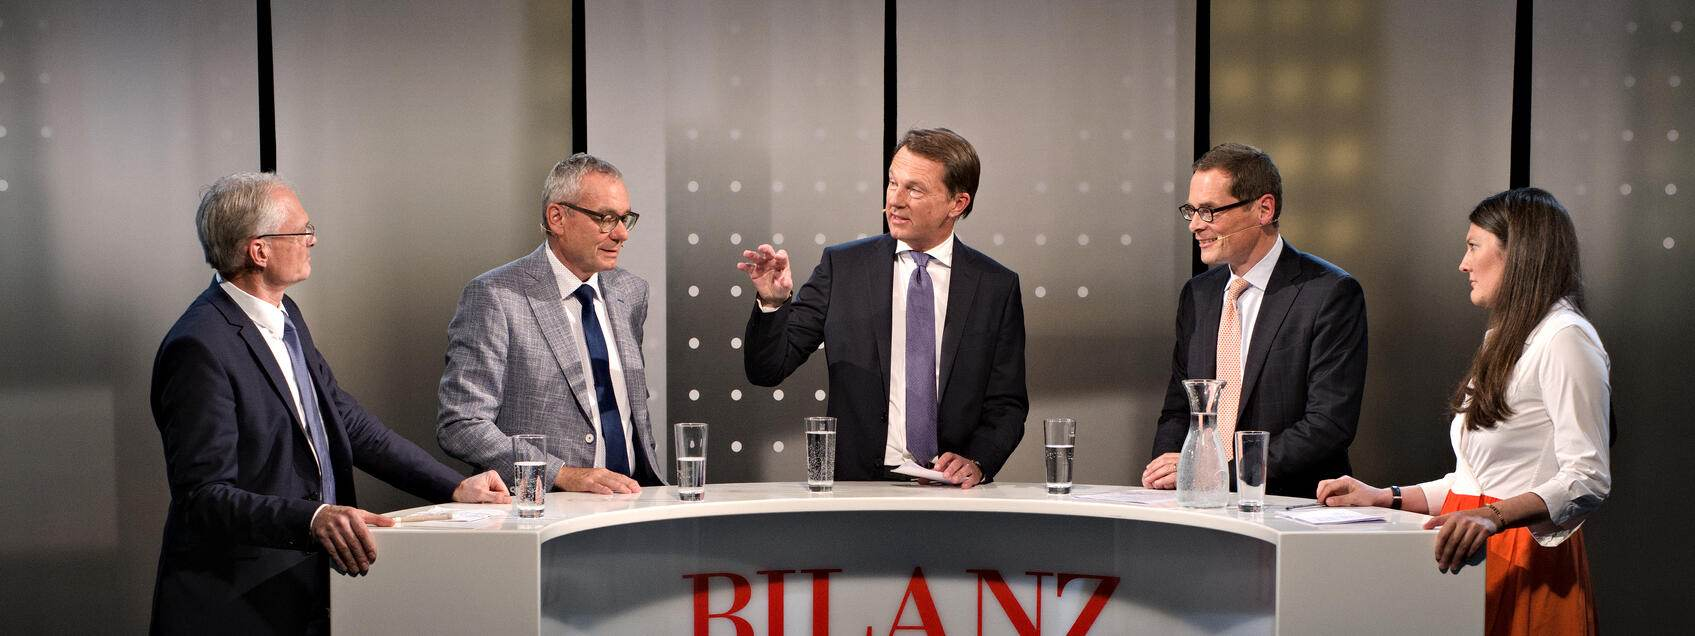 BILANZ Business Talk